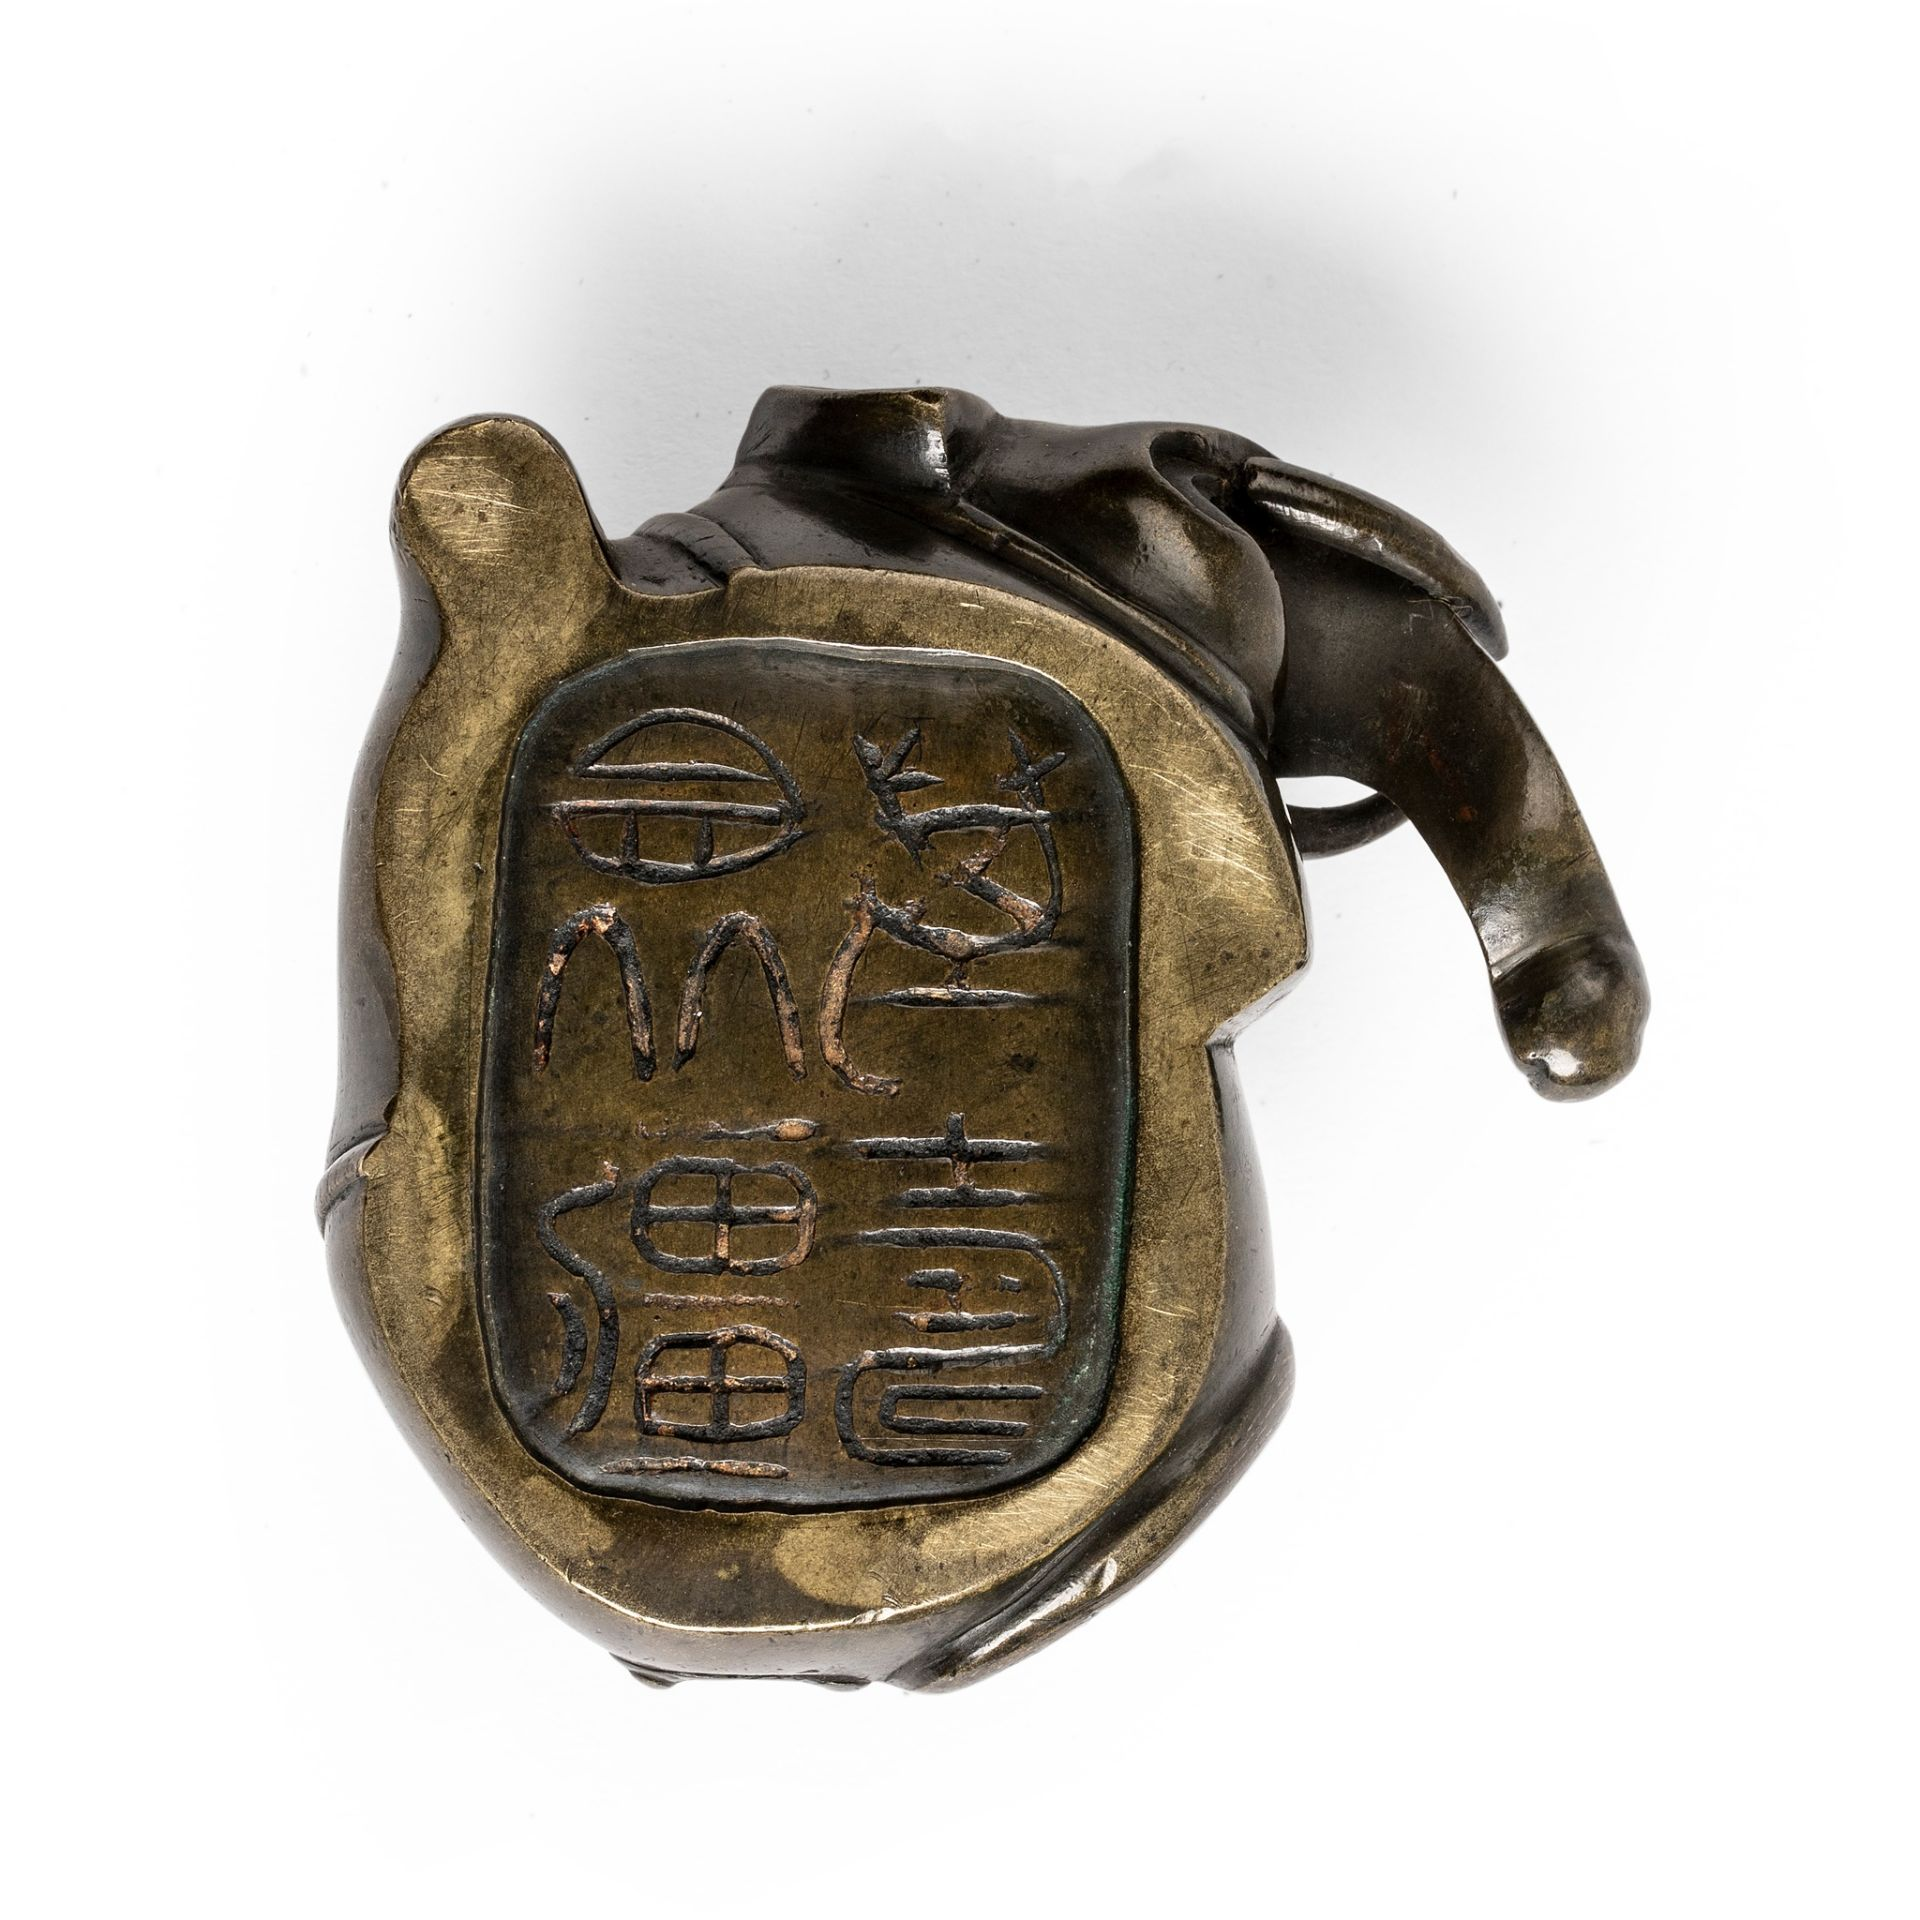 BRONZE PAPERWEIGHT OF AN ELEPHANT QING DYNASTY, 19TH CENTURY - Image 2 of 2